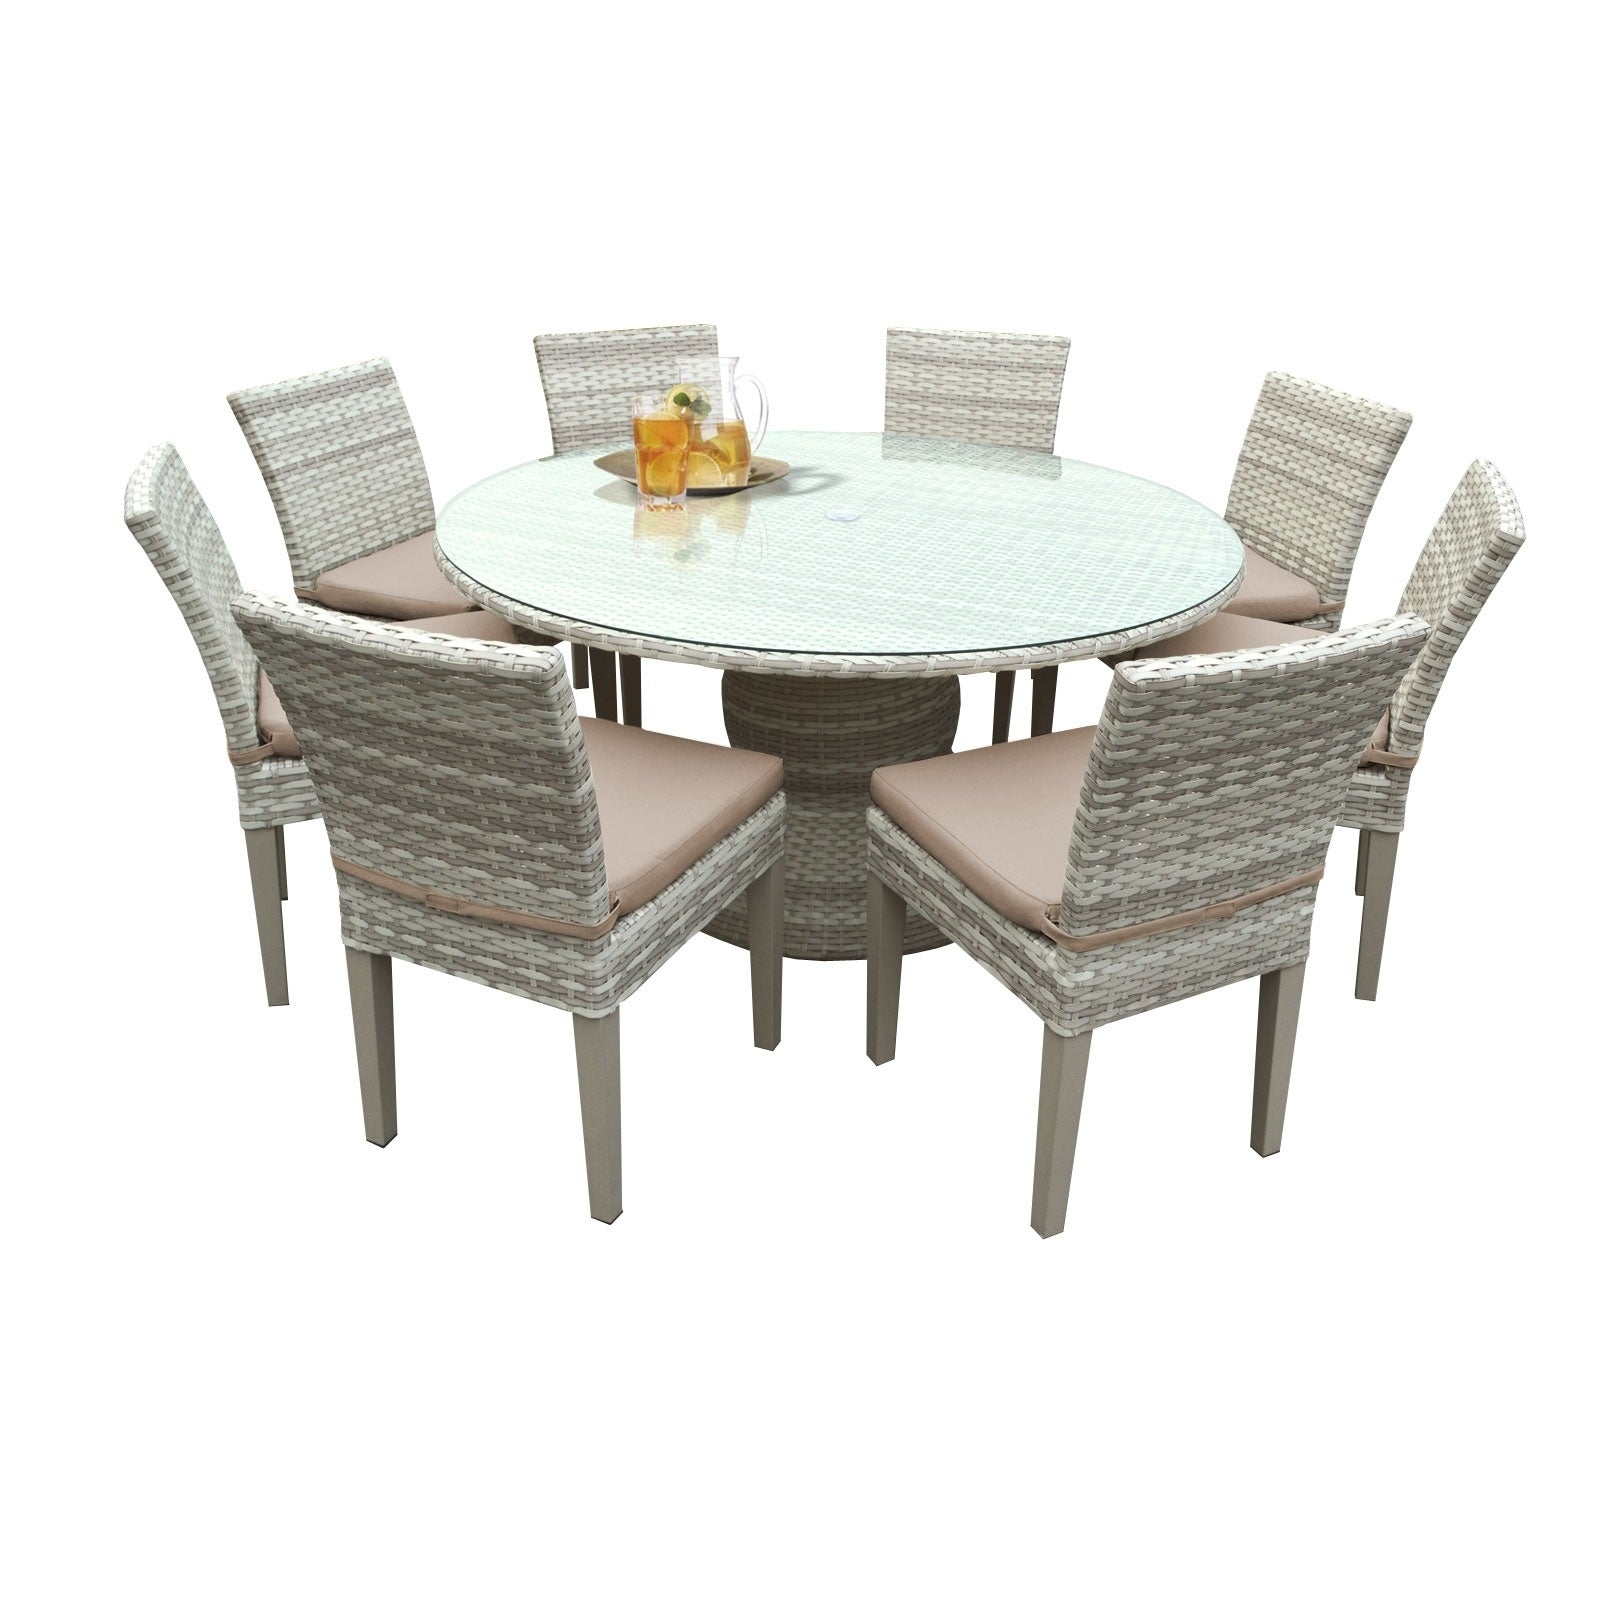 catamaran outdoor patio round wicker dining table and 8. Black Bedroom Furniture Sets. Home Design Ideas